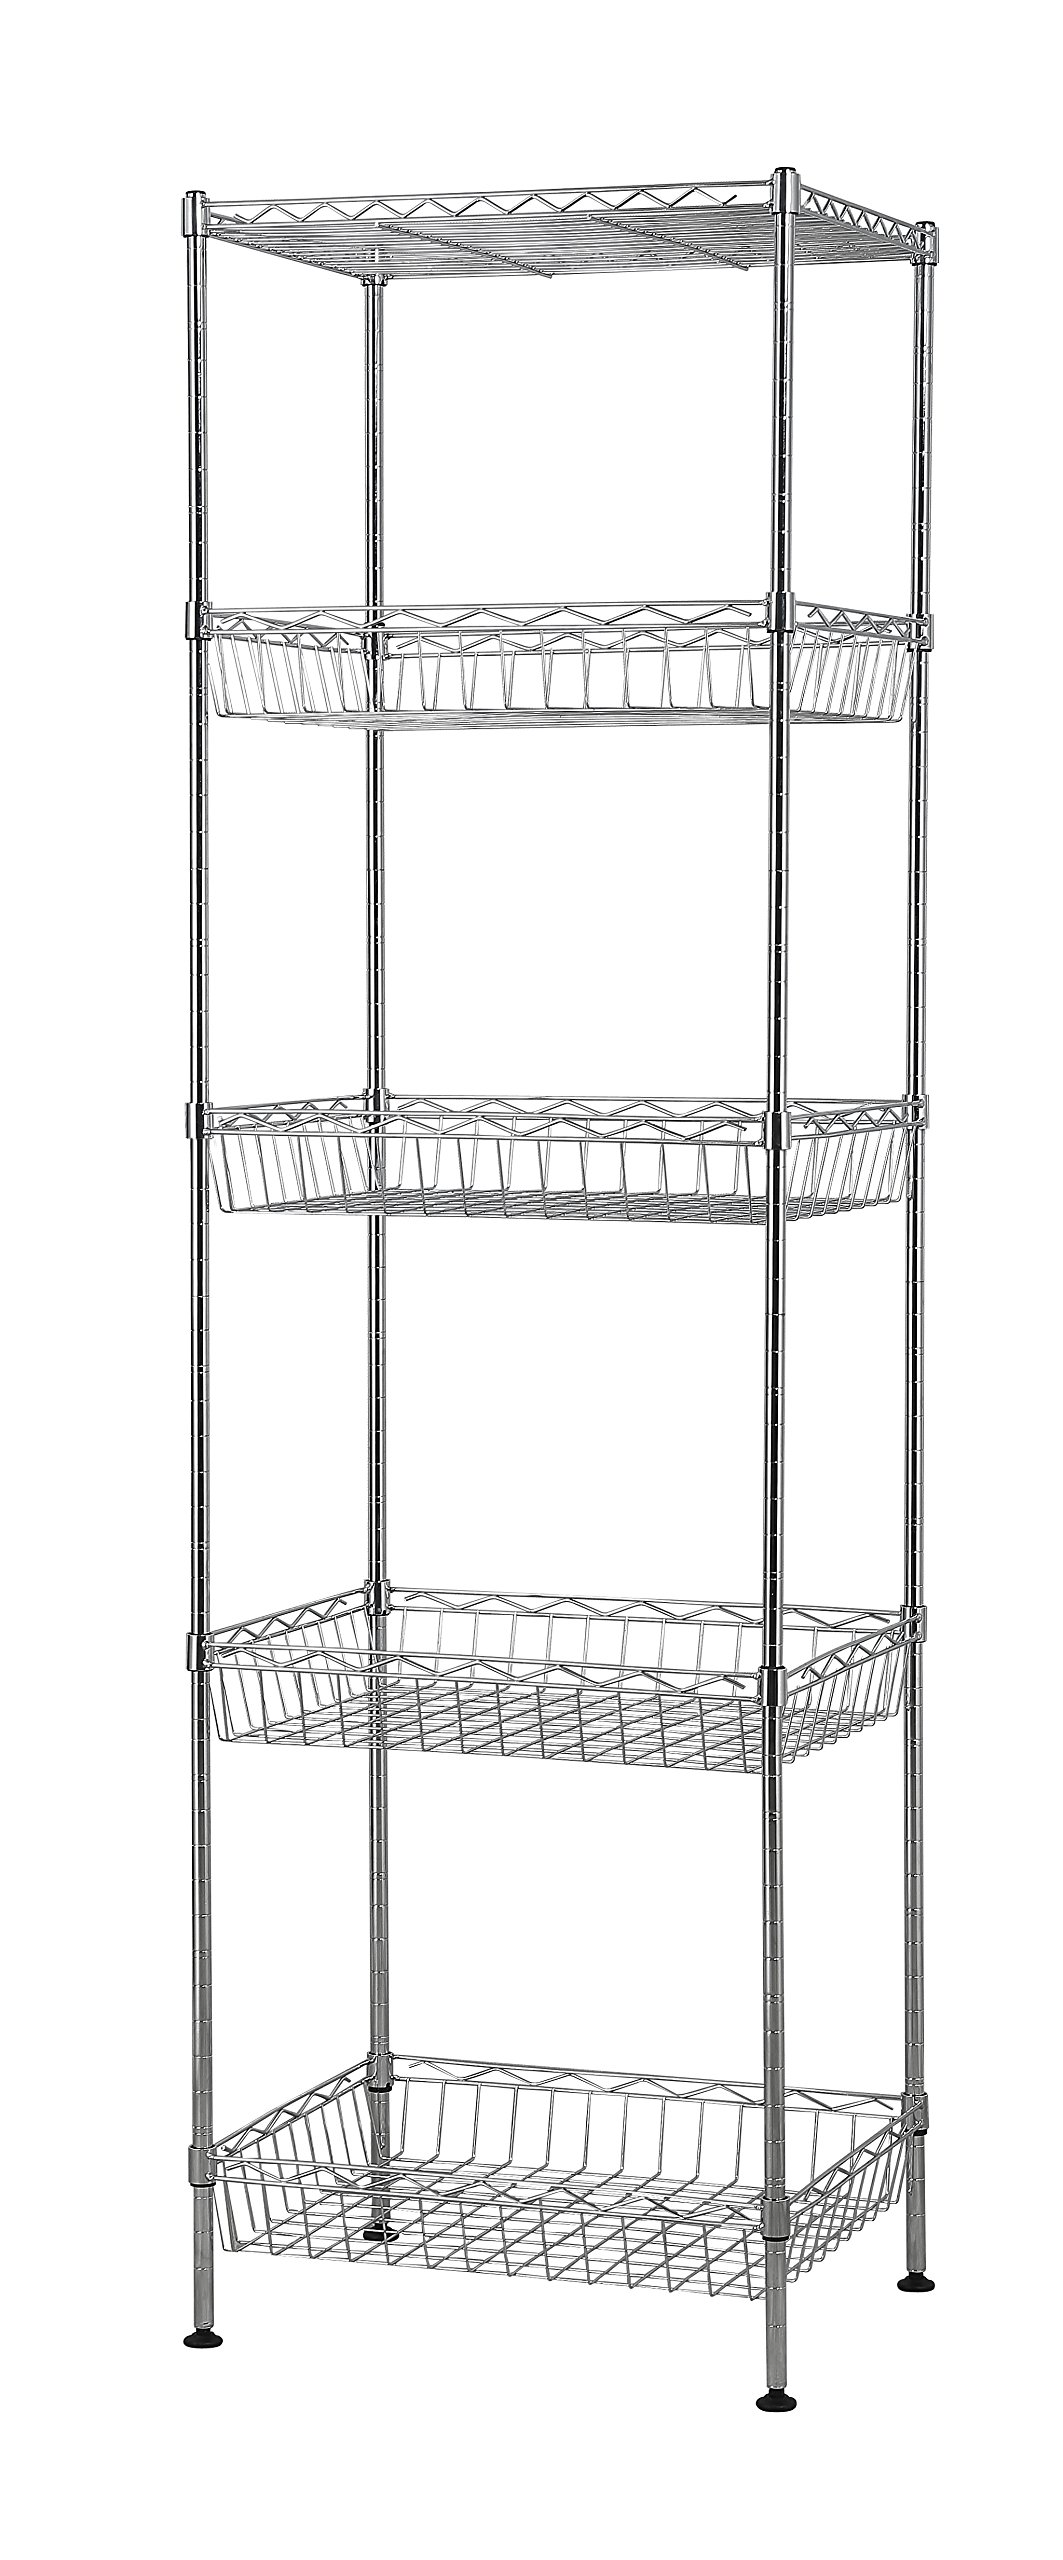 Muscle Rack WB181460 5-Tier Wire Shelving Unit with Baskets, 60'' Height, 18'' Width, 14'' Length by Muscle Rack